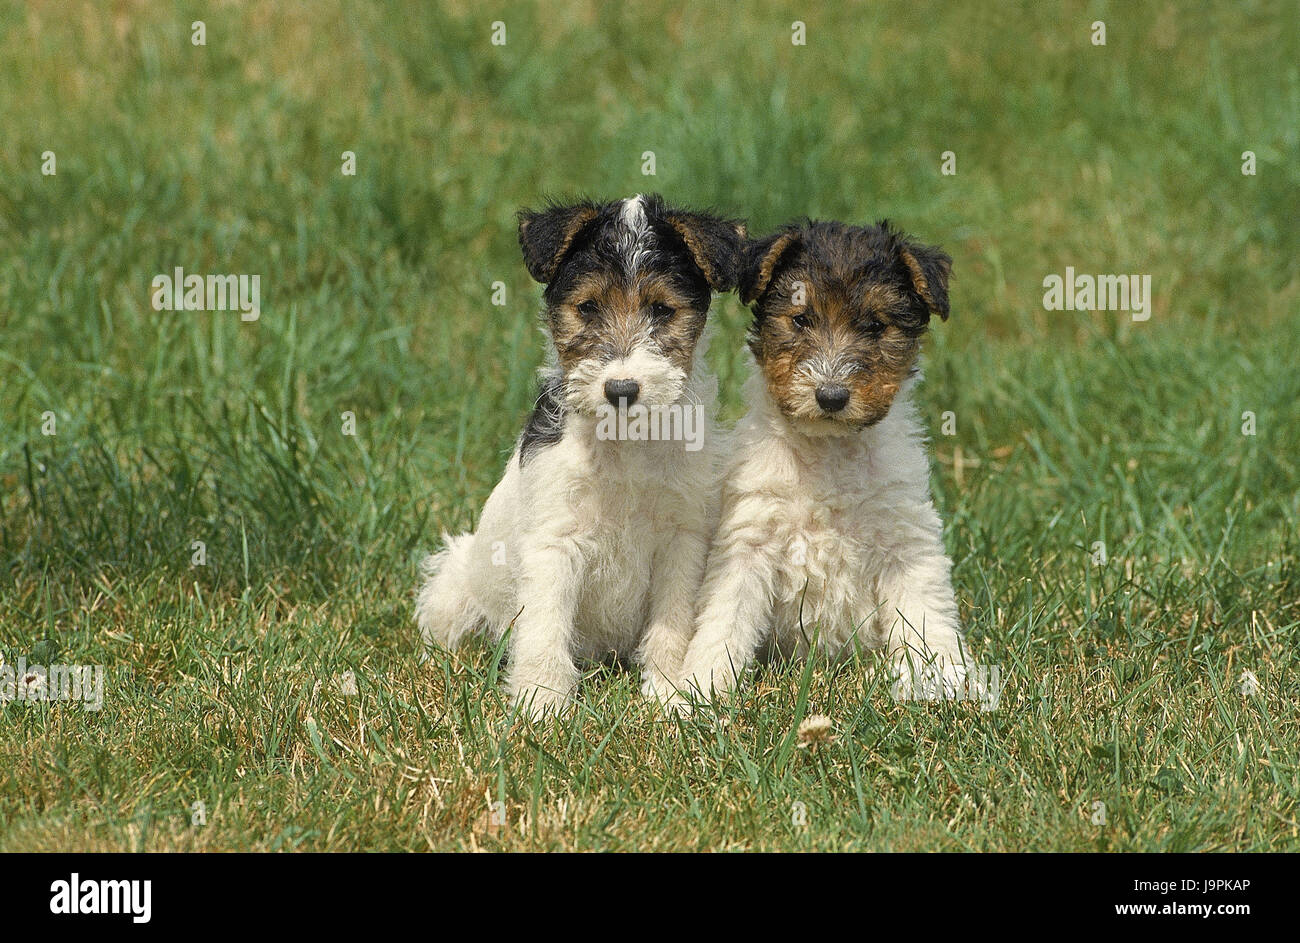 Dog puppies,wirehaired terriers,two,grass,sit, - Stock Image